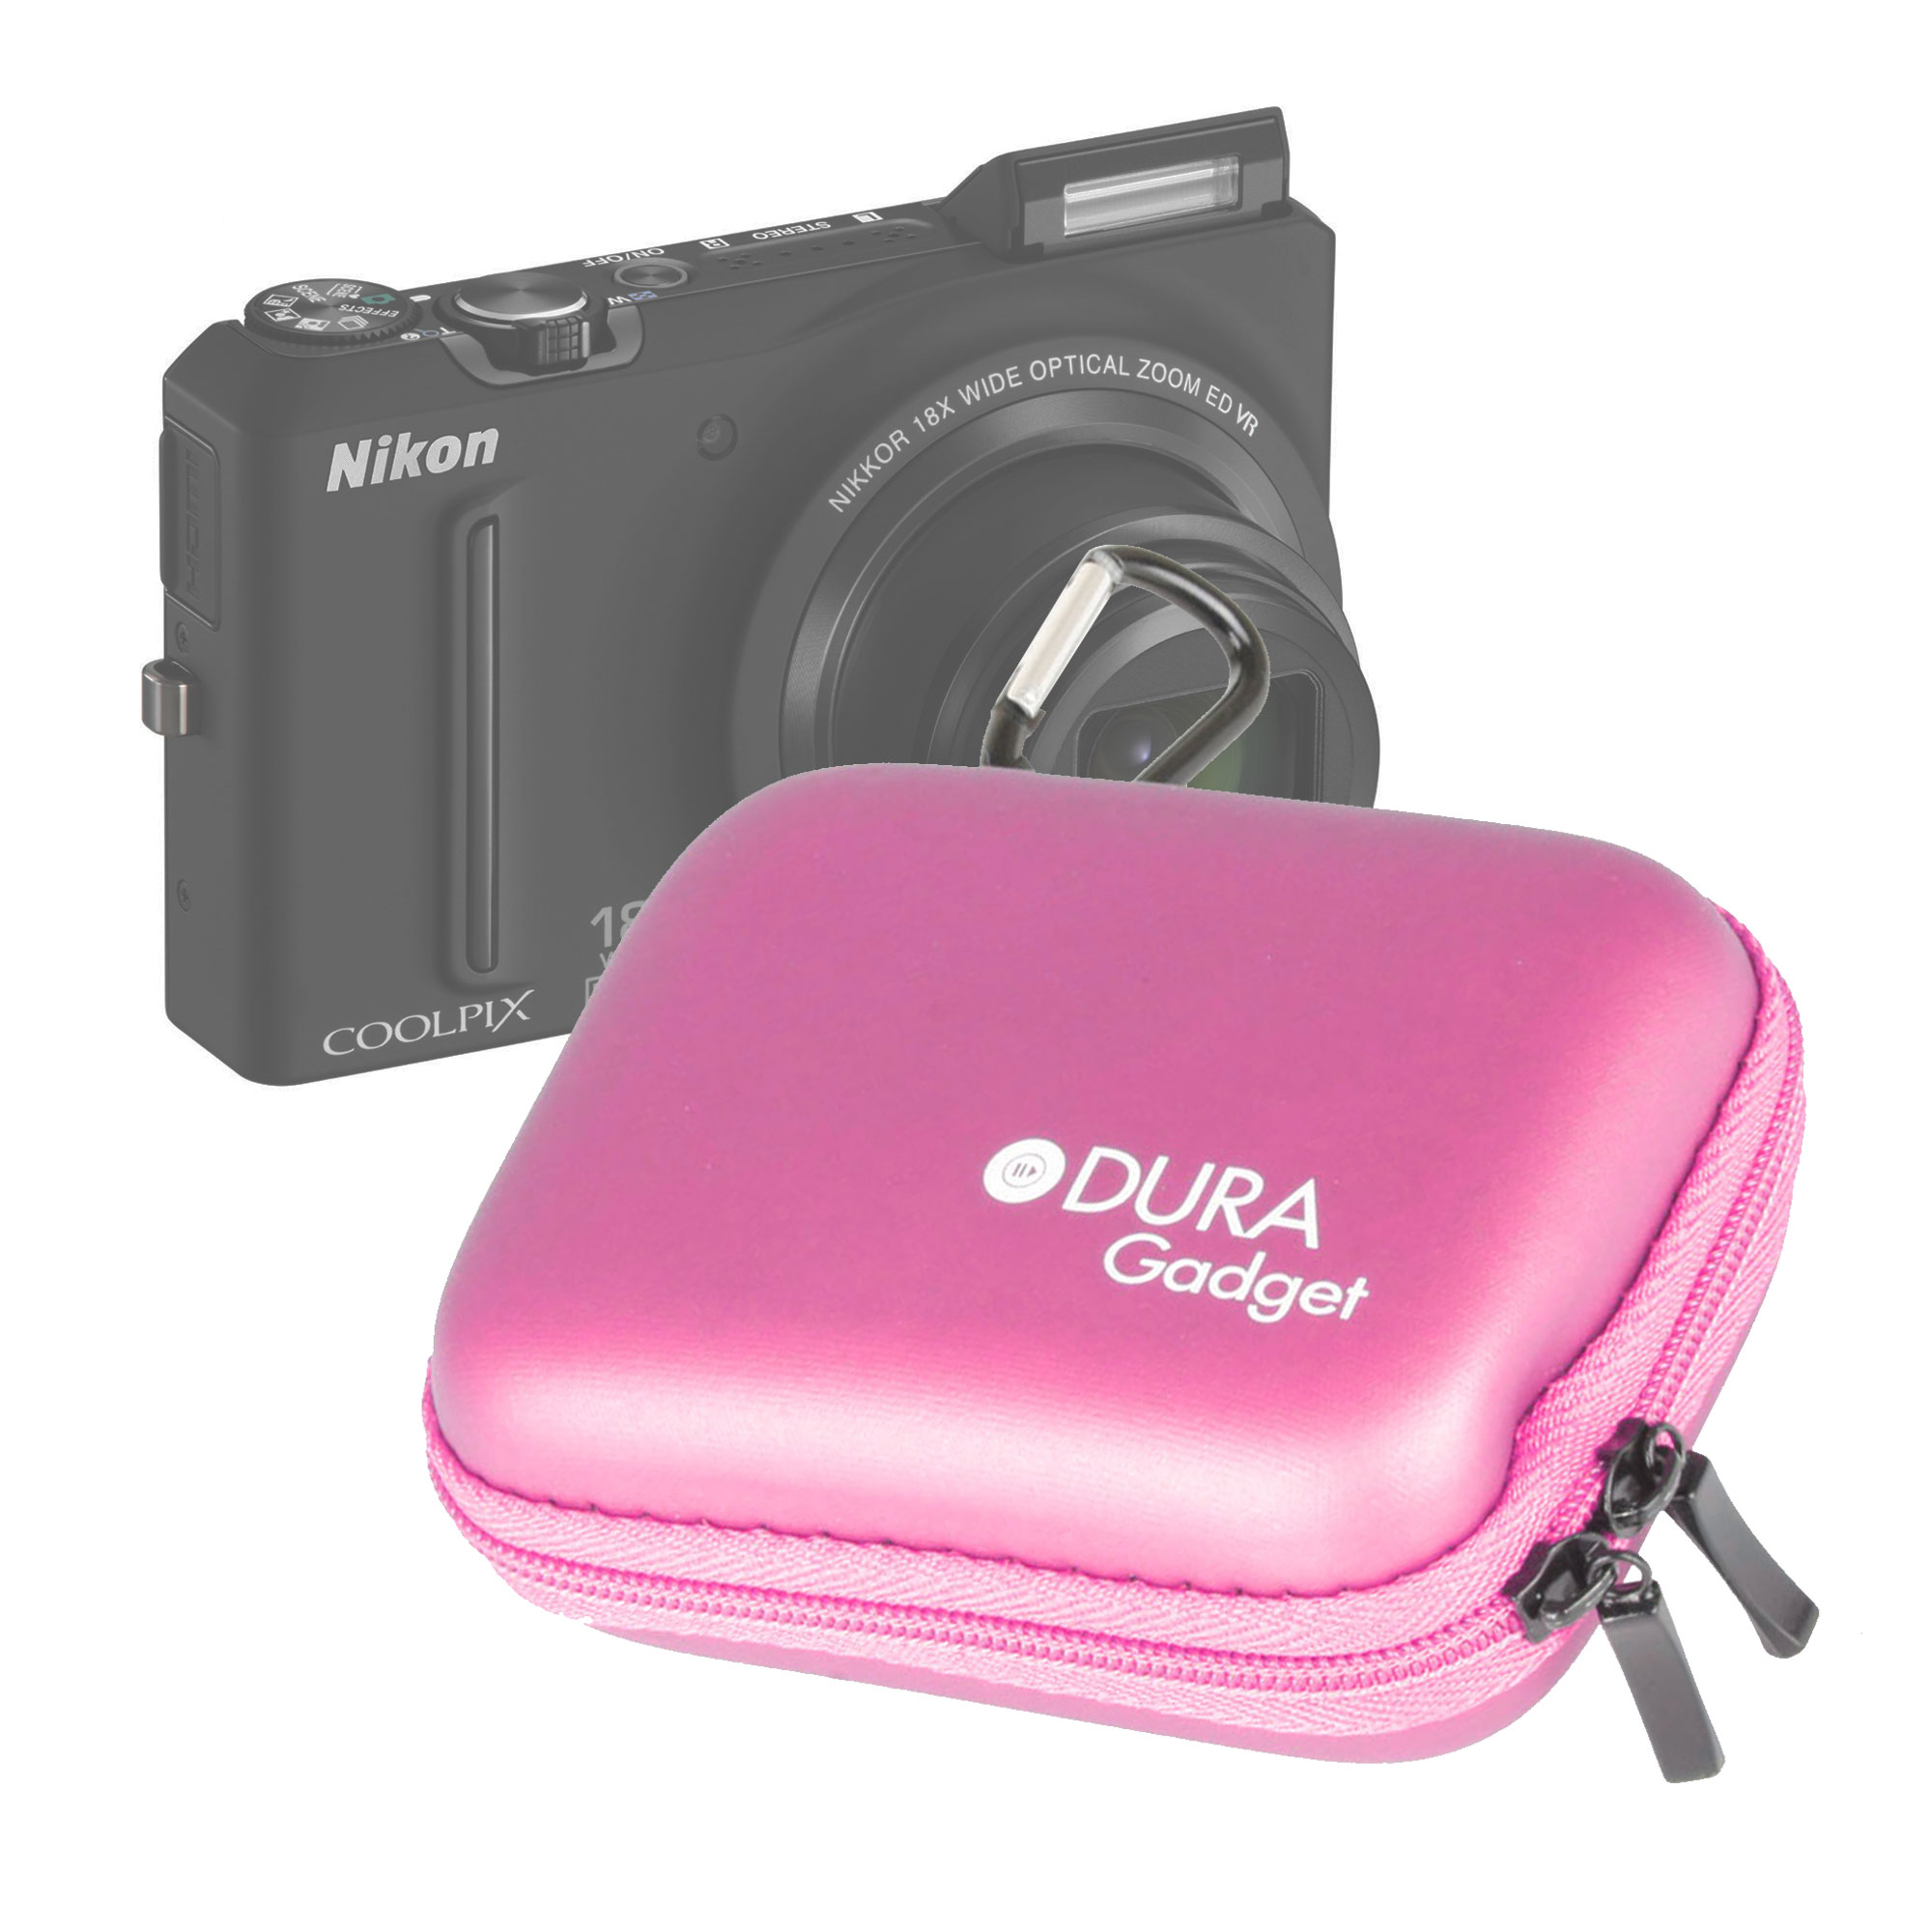 Pink Hard Digital/Compact Camera Case/Pouch & Carabiner Fits Nikon CoolPix S9100 Preview